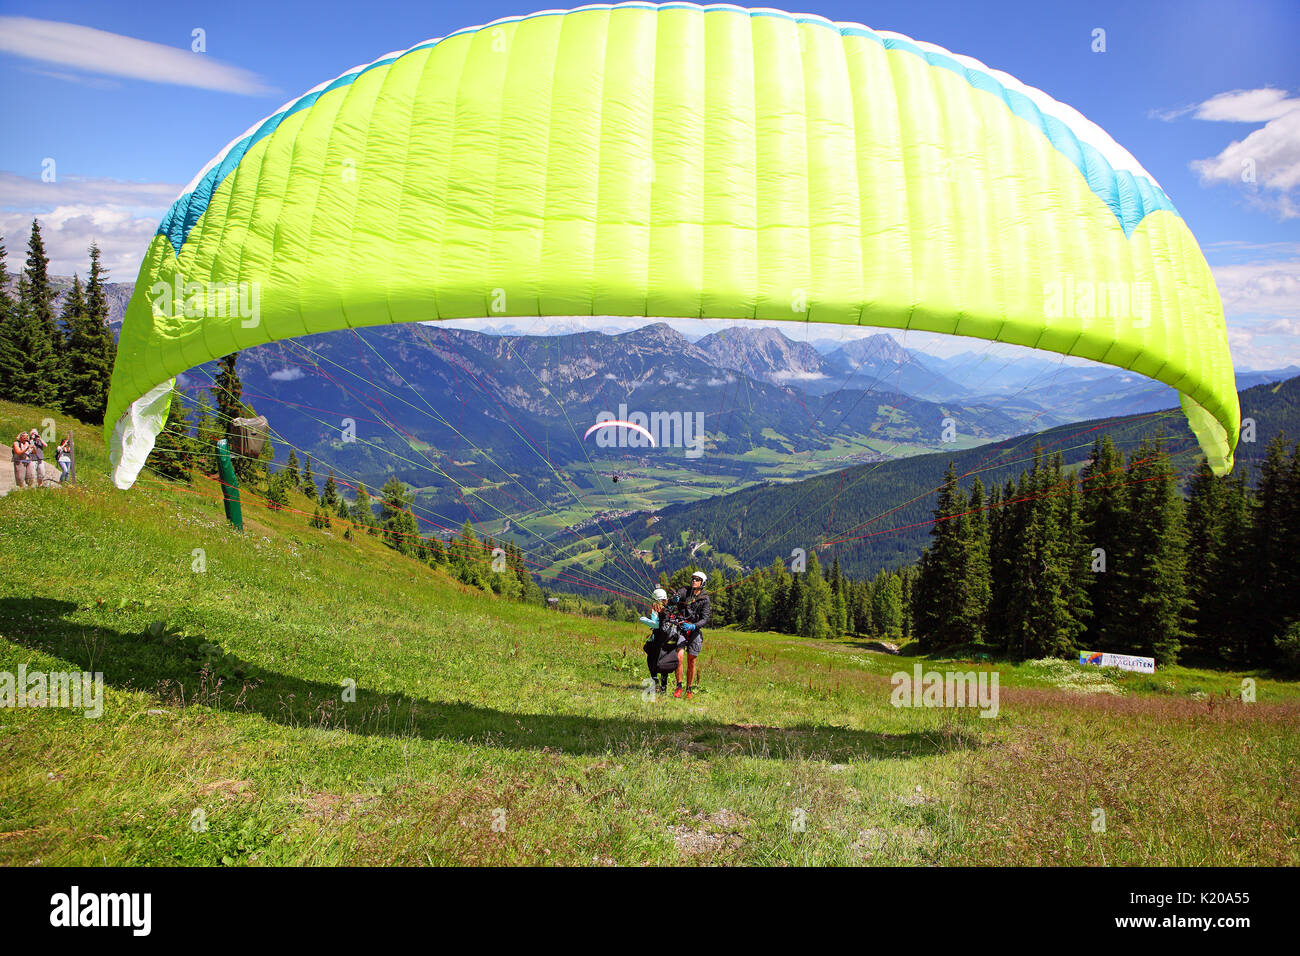 Paragliders starting a tandem jump, Planai, Schladming, Styria, Austria - Stock Image